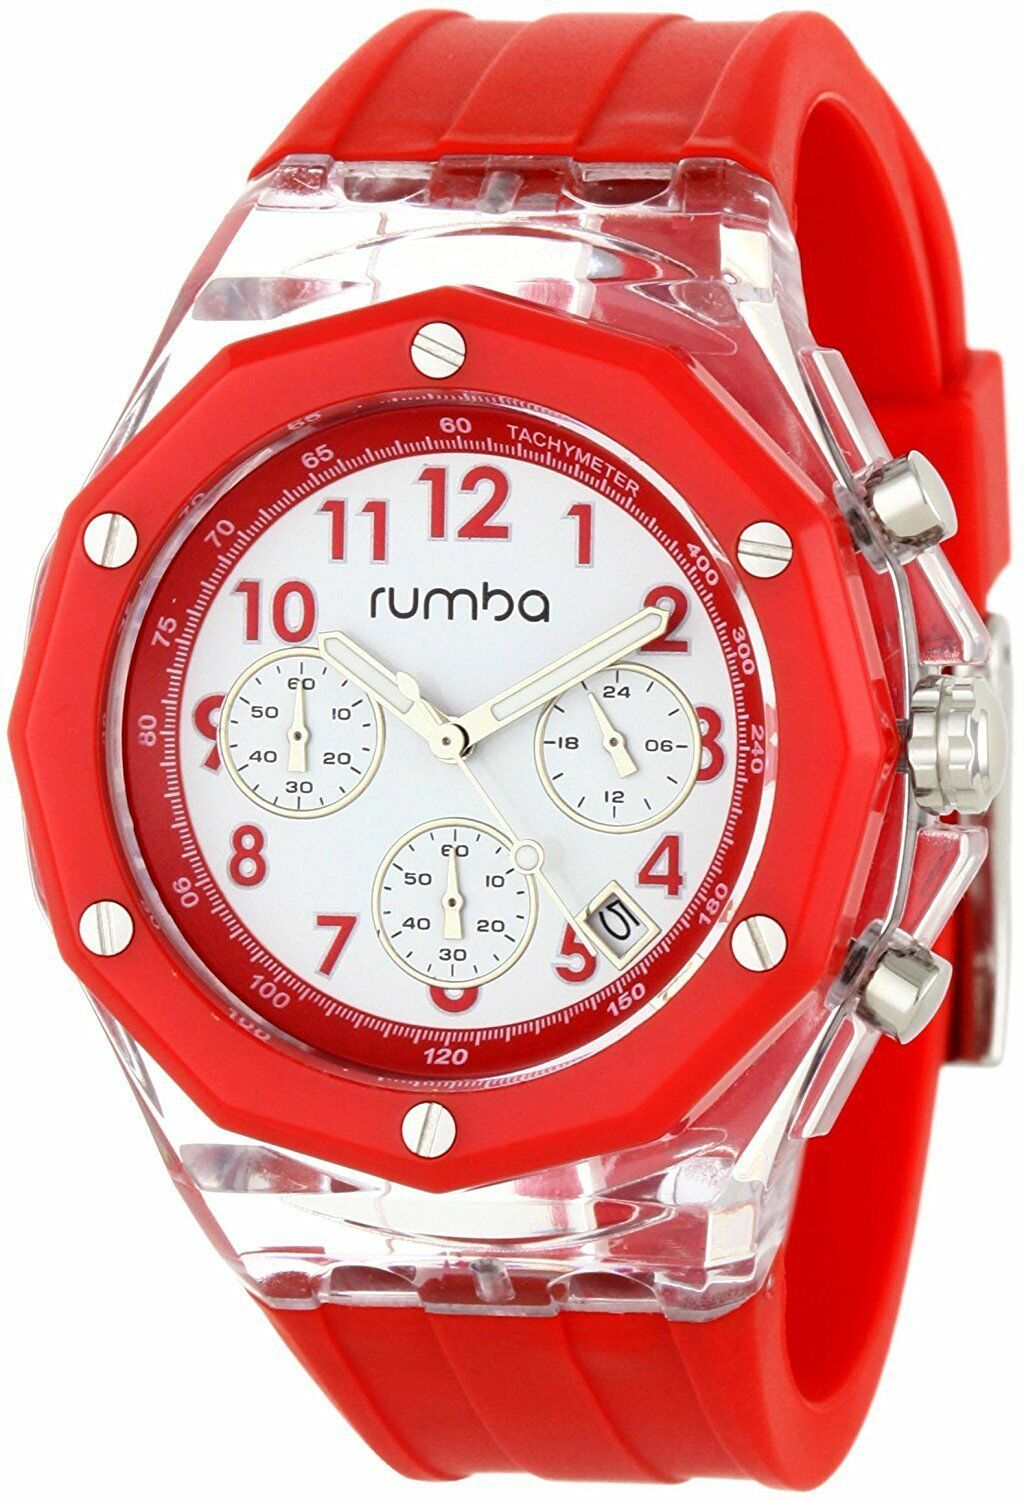 Rumba Time Mens Mercer Big Apple 45MM Clear Red Acrylic White Dial Watch NIB